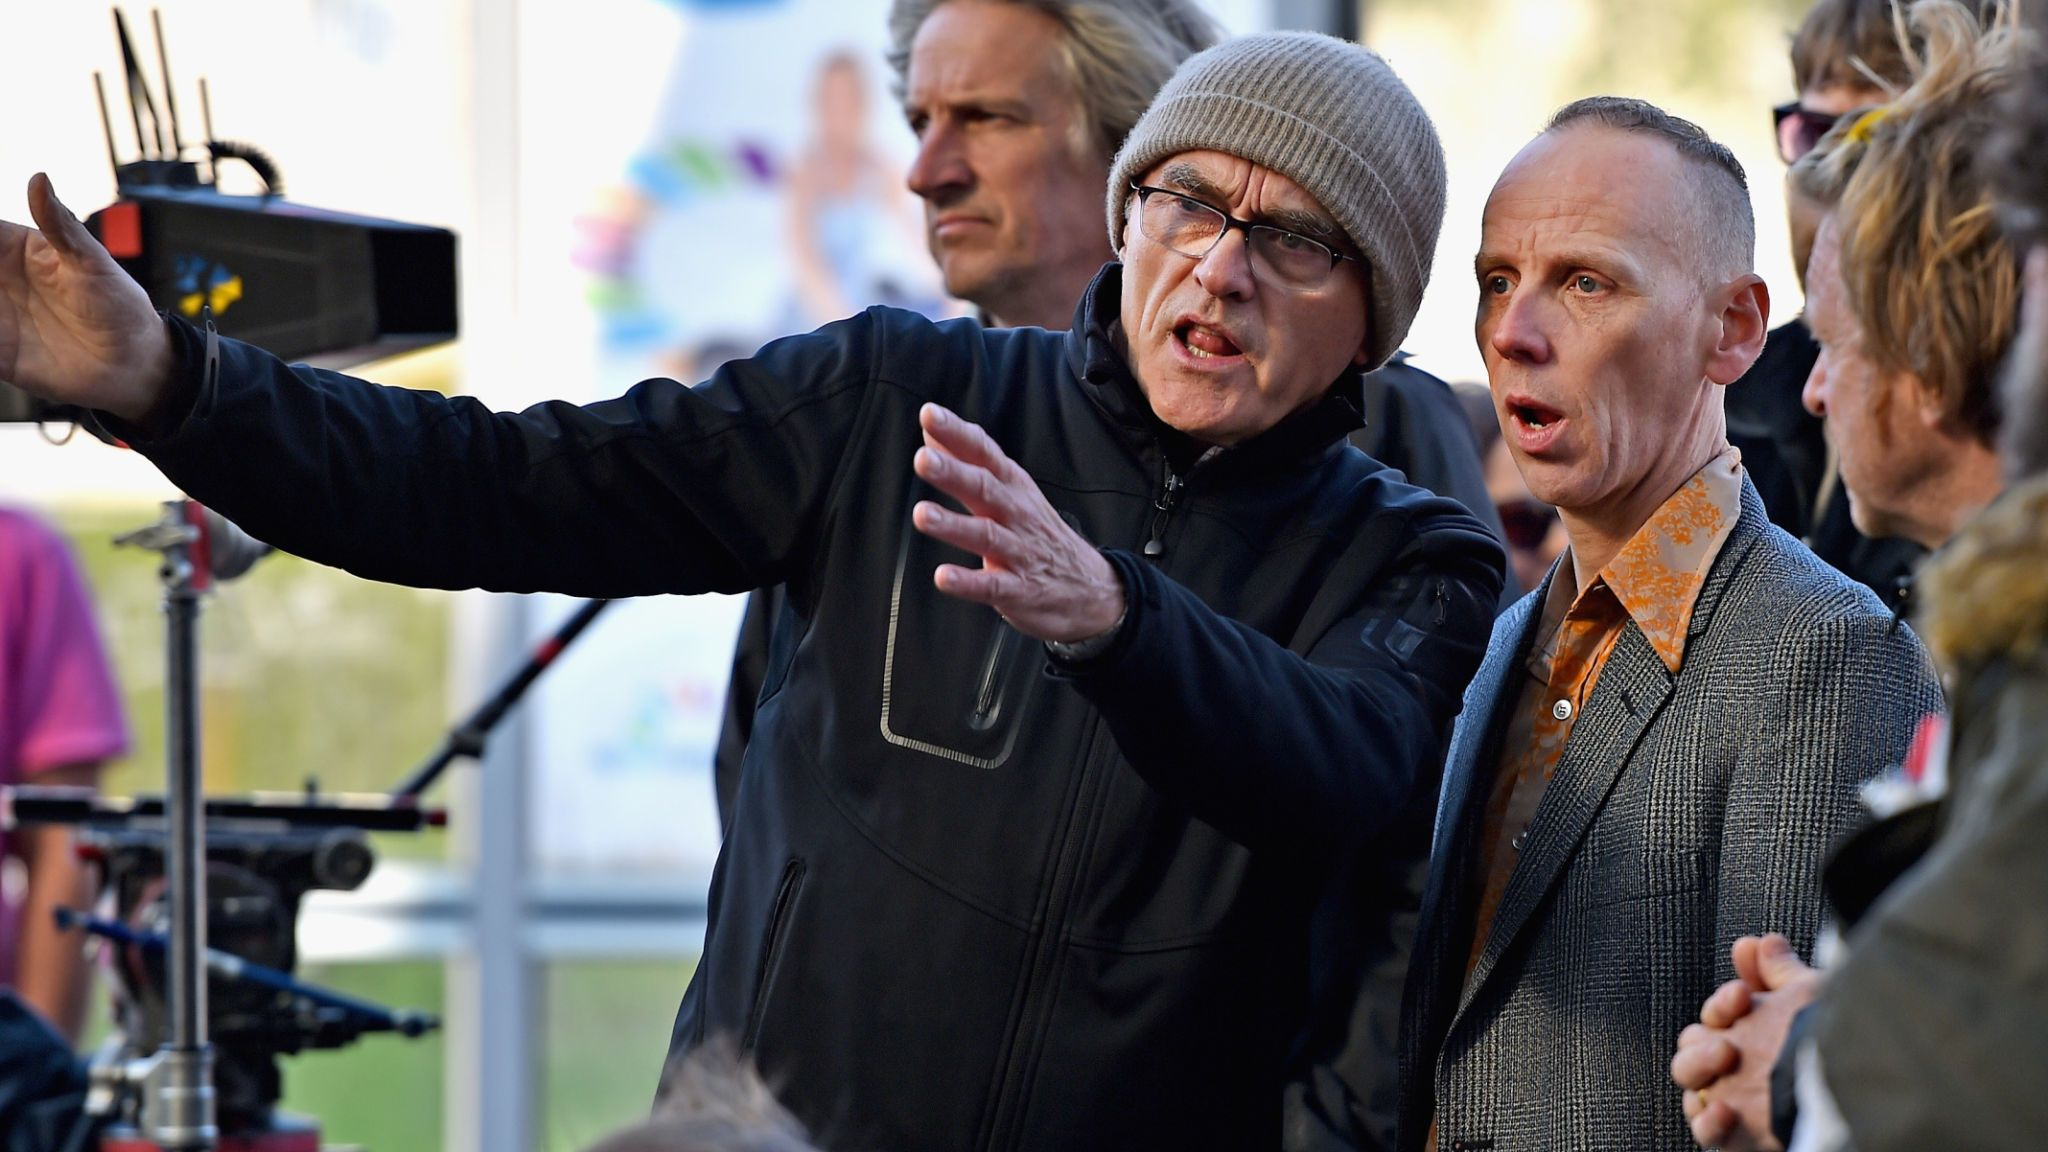 Director Danny Boyle and actor Ewen Bremner on the set of the Trainspotting sequel on May 11 2016 in Edinburgh, Scotland. The long awaited Trainspotting 2 is being filmed in Edinburgh and Glasgow, 20 years after the original was released it will also see the cast from the first film returning including Ewan McGregor, Jonny Lee Miller and Robert Carlyle